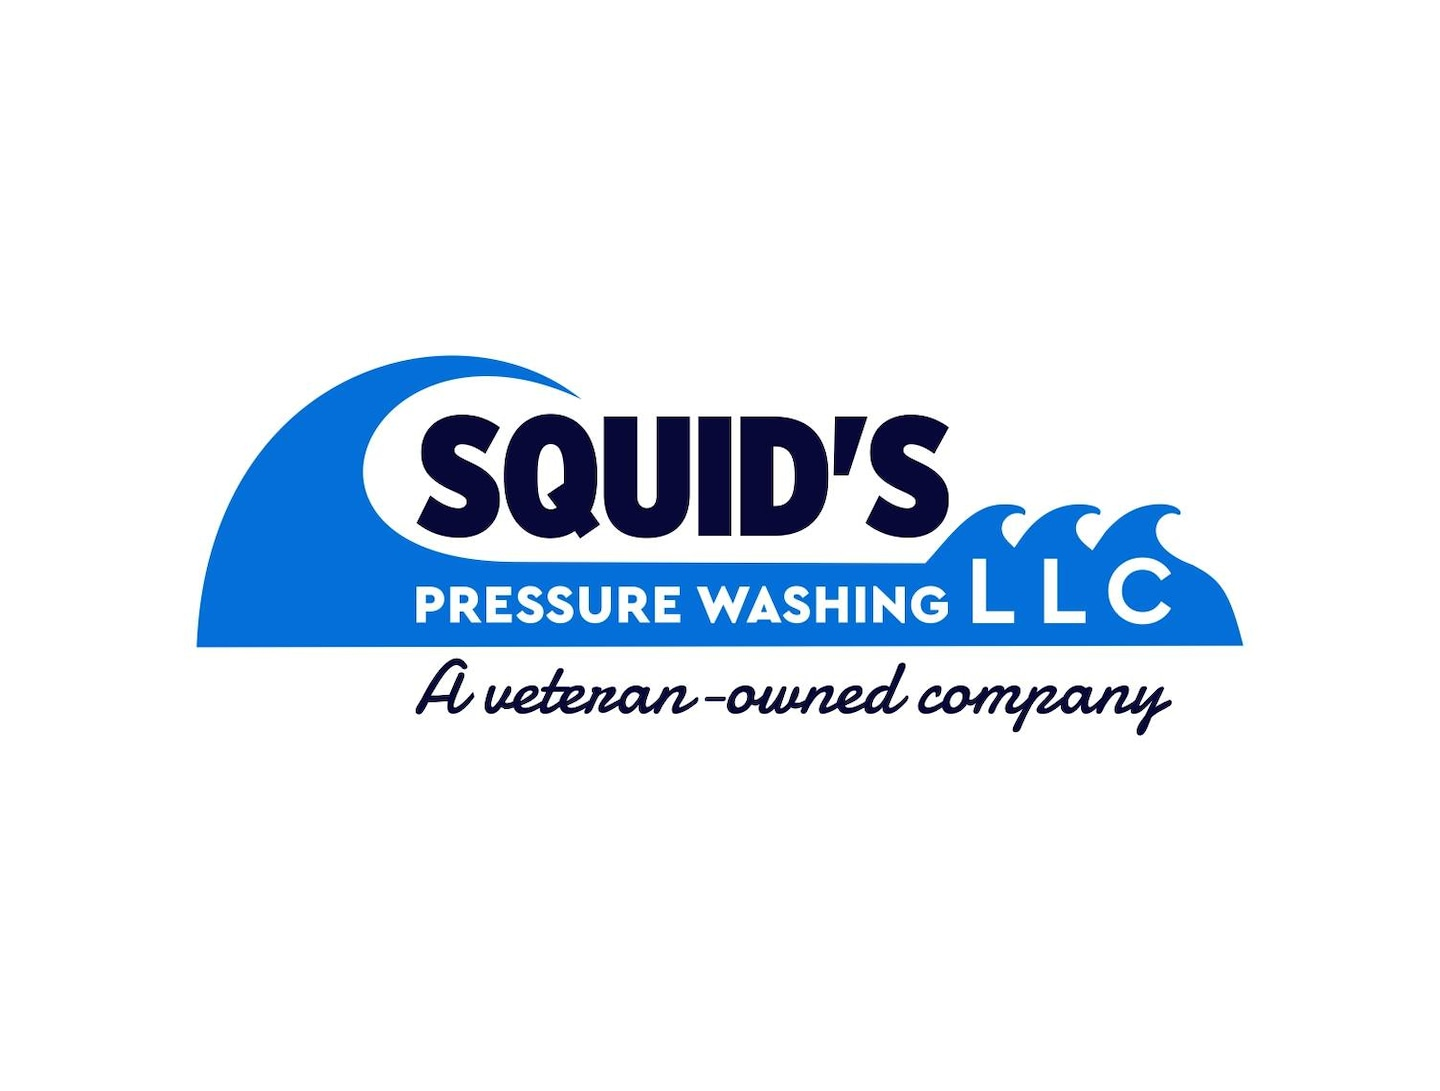 Squid's Pressure Washing LLC